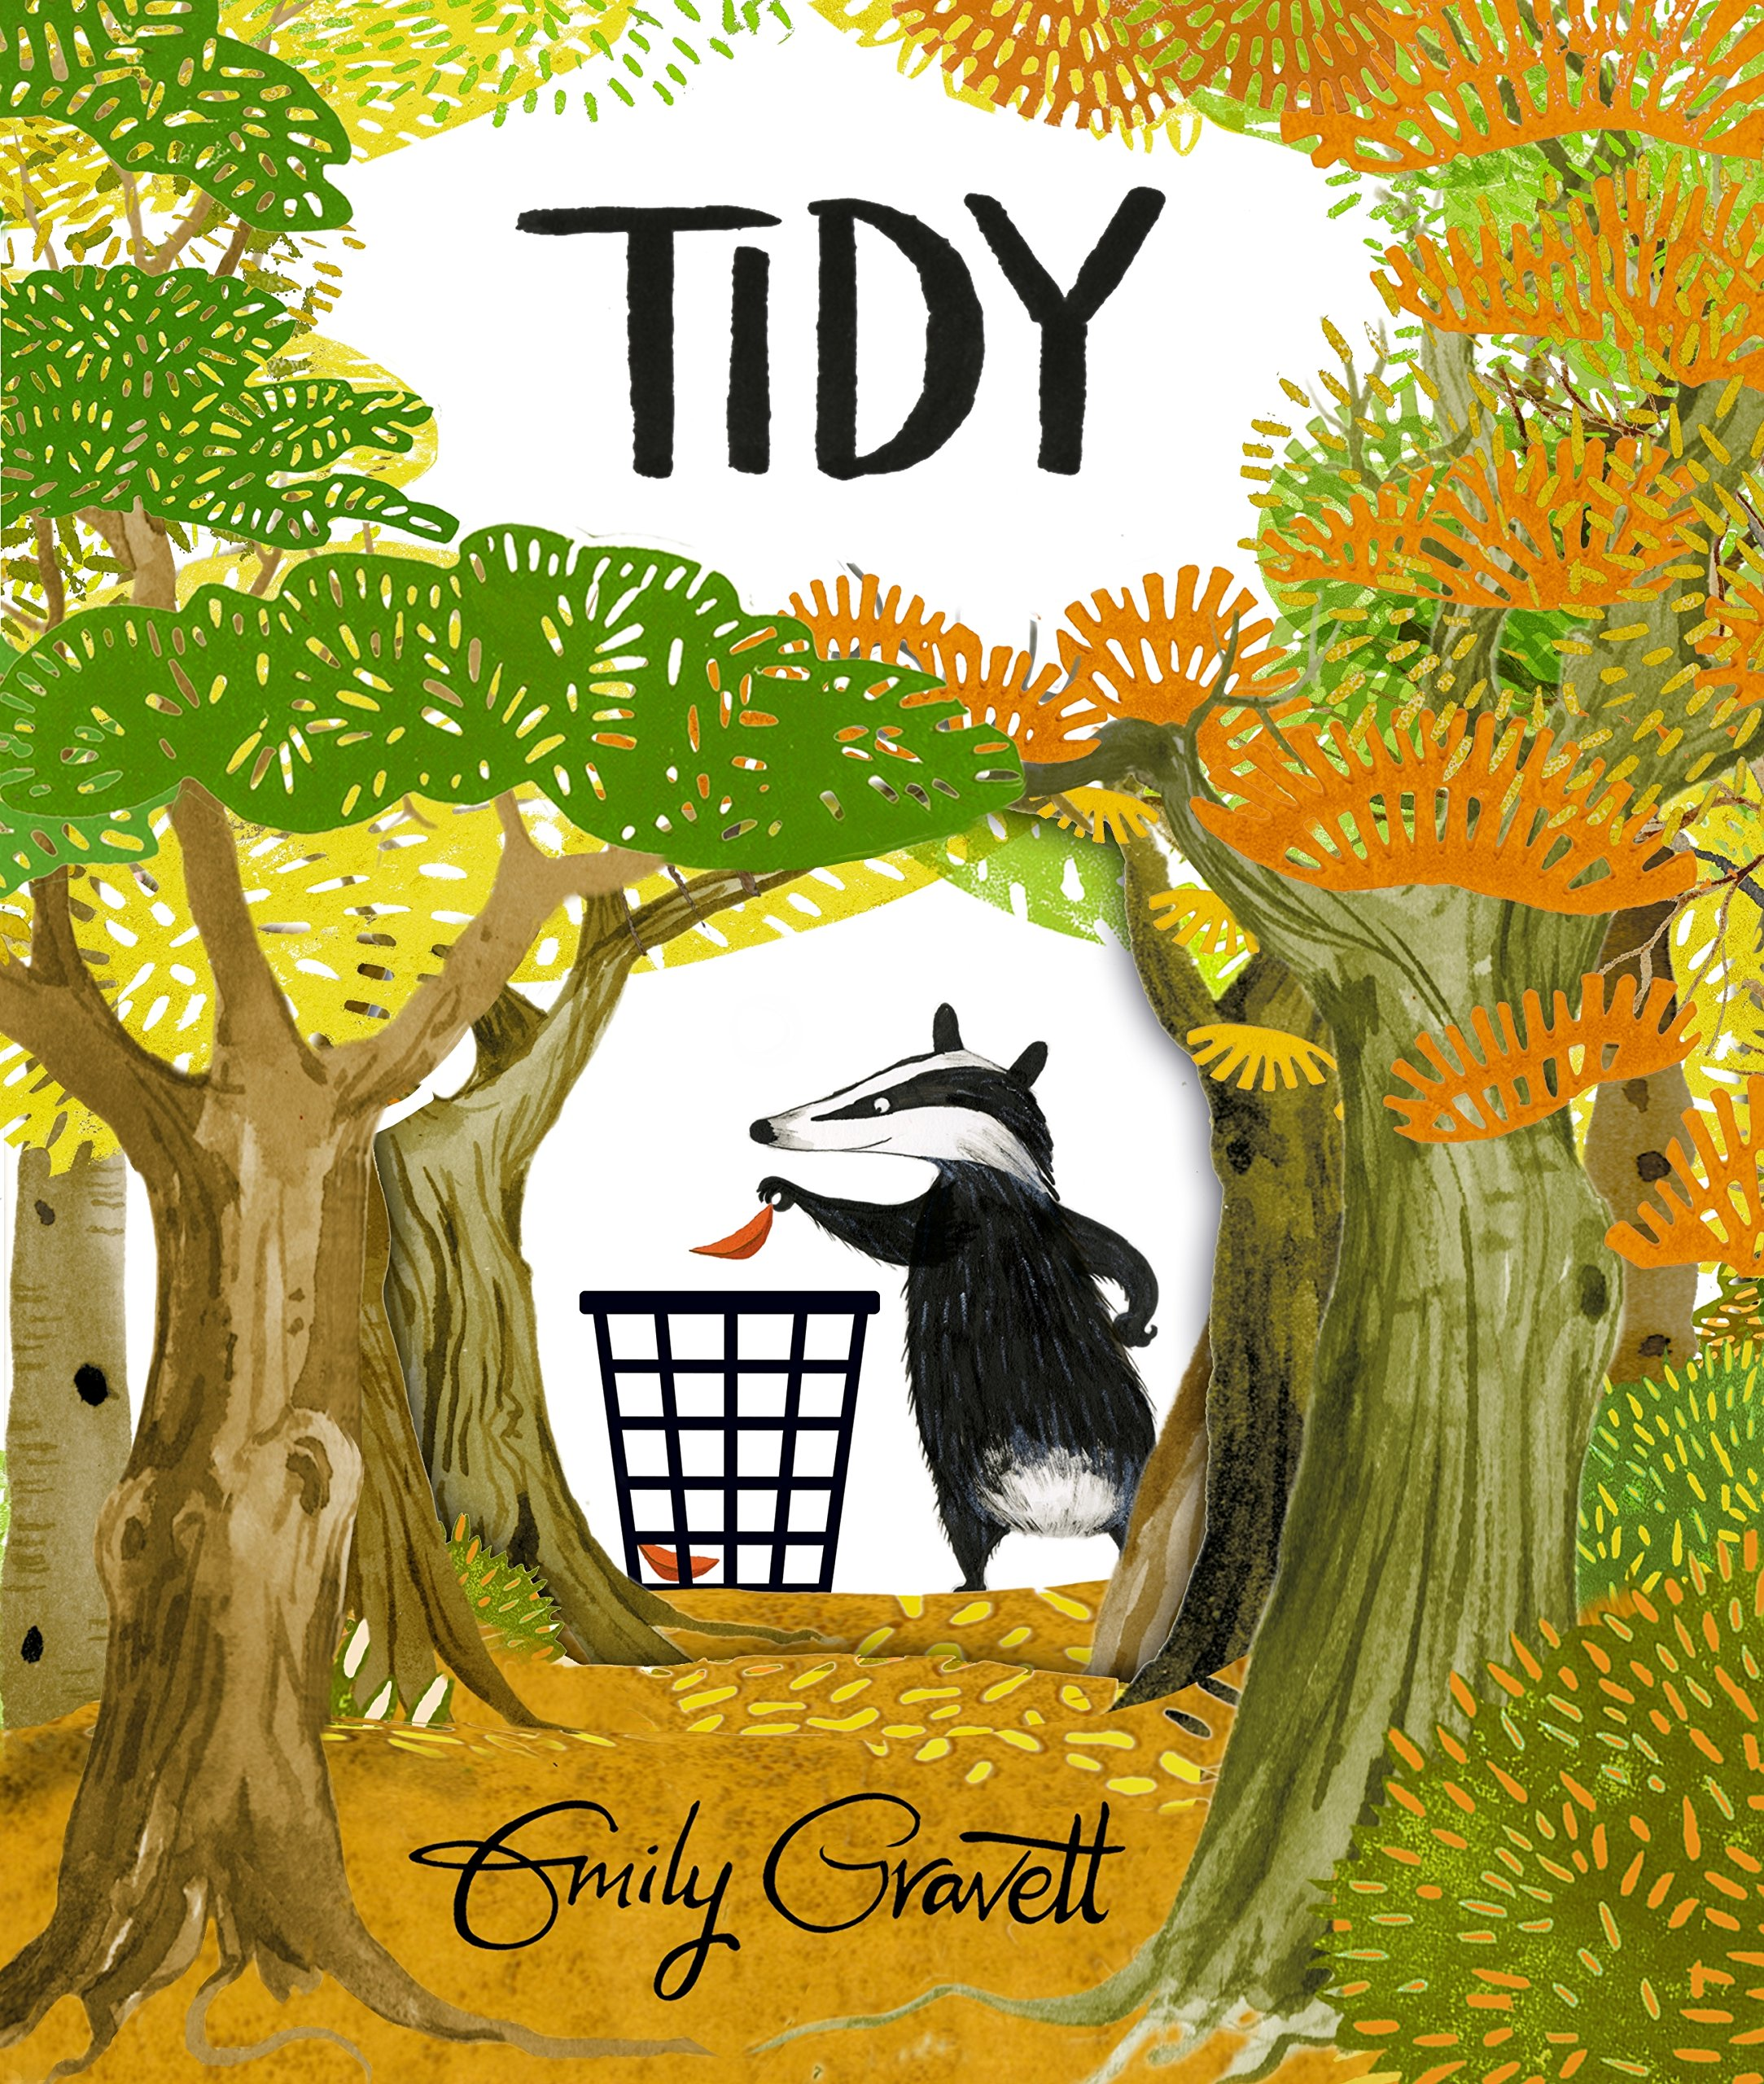 Tidy: Amazon.co.uk: Gravett, Emily: 9781447273981: Books